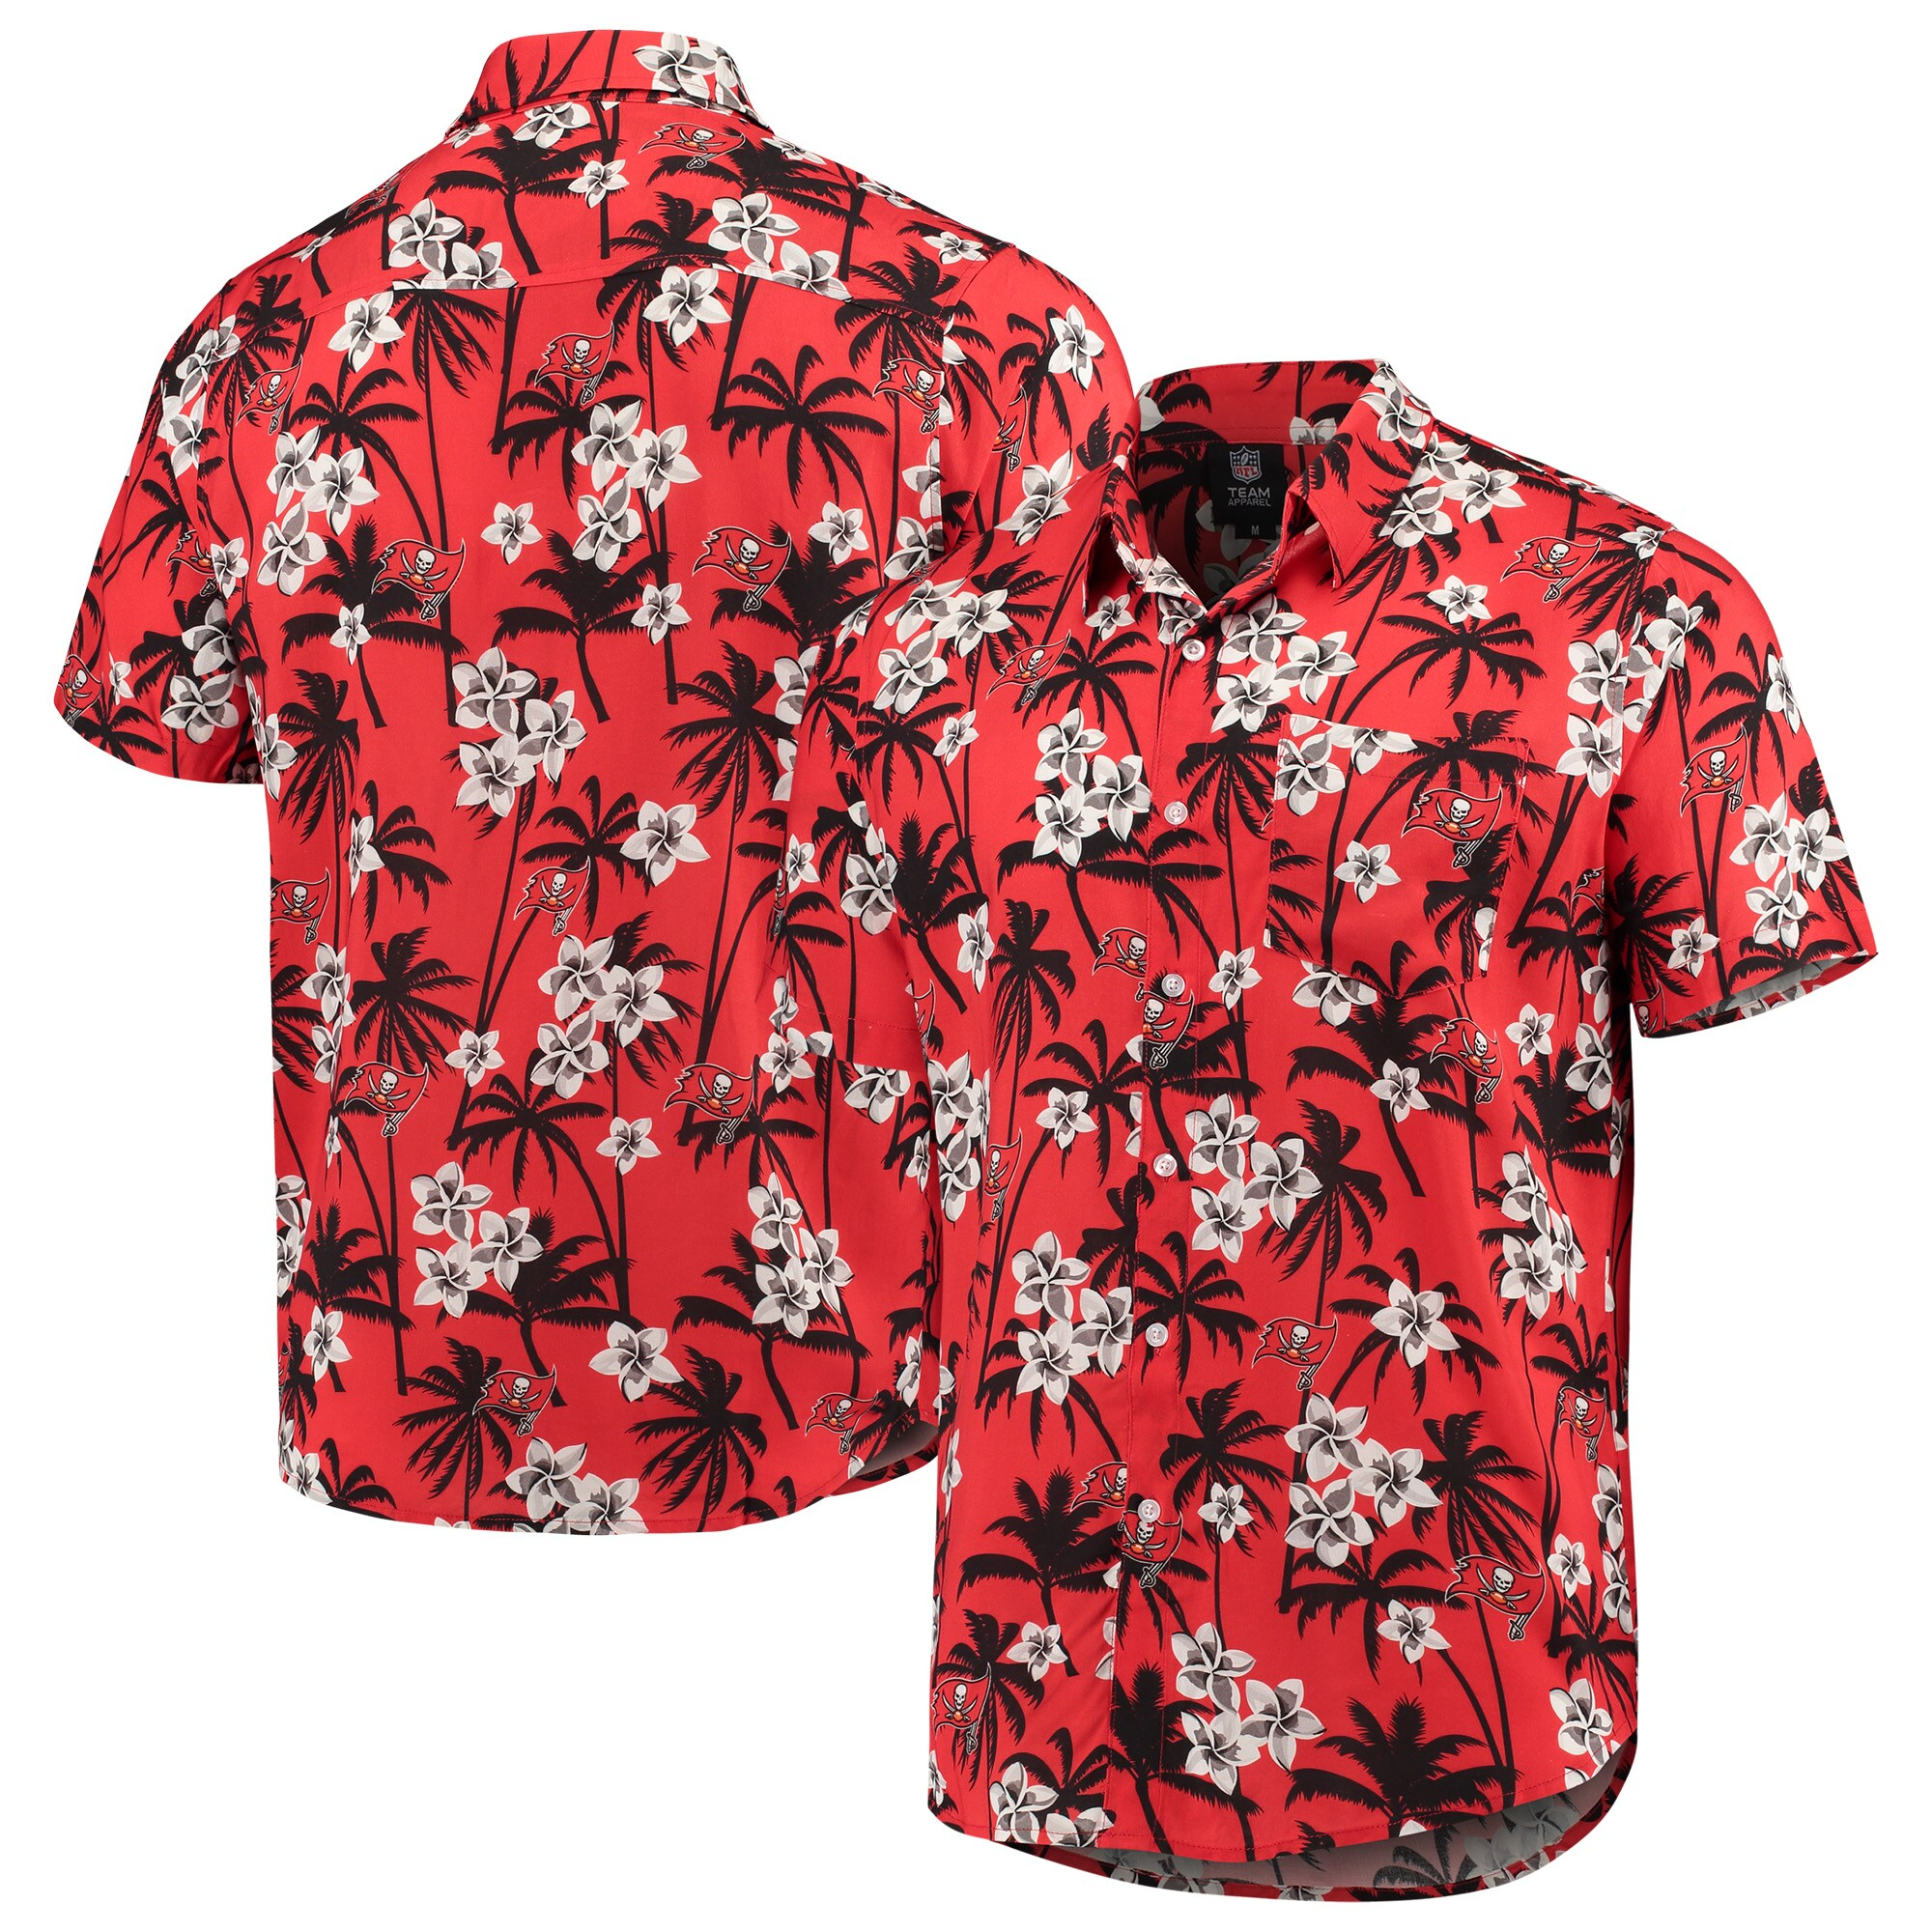 Tampa Bay Buccaneers Floral Woven Button-Up Shirt - Red